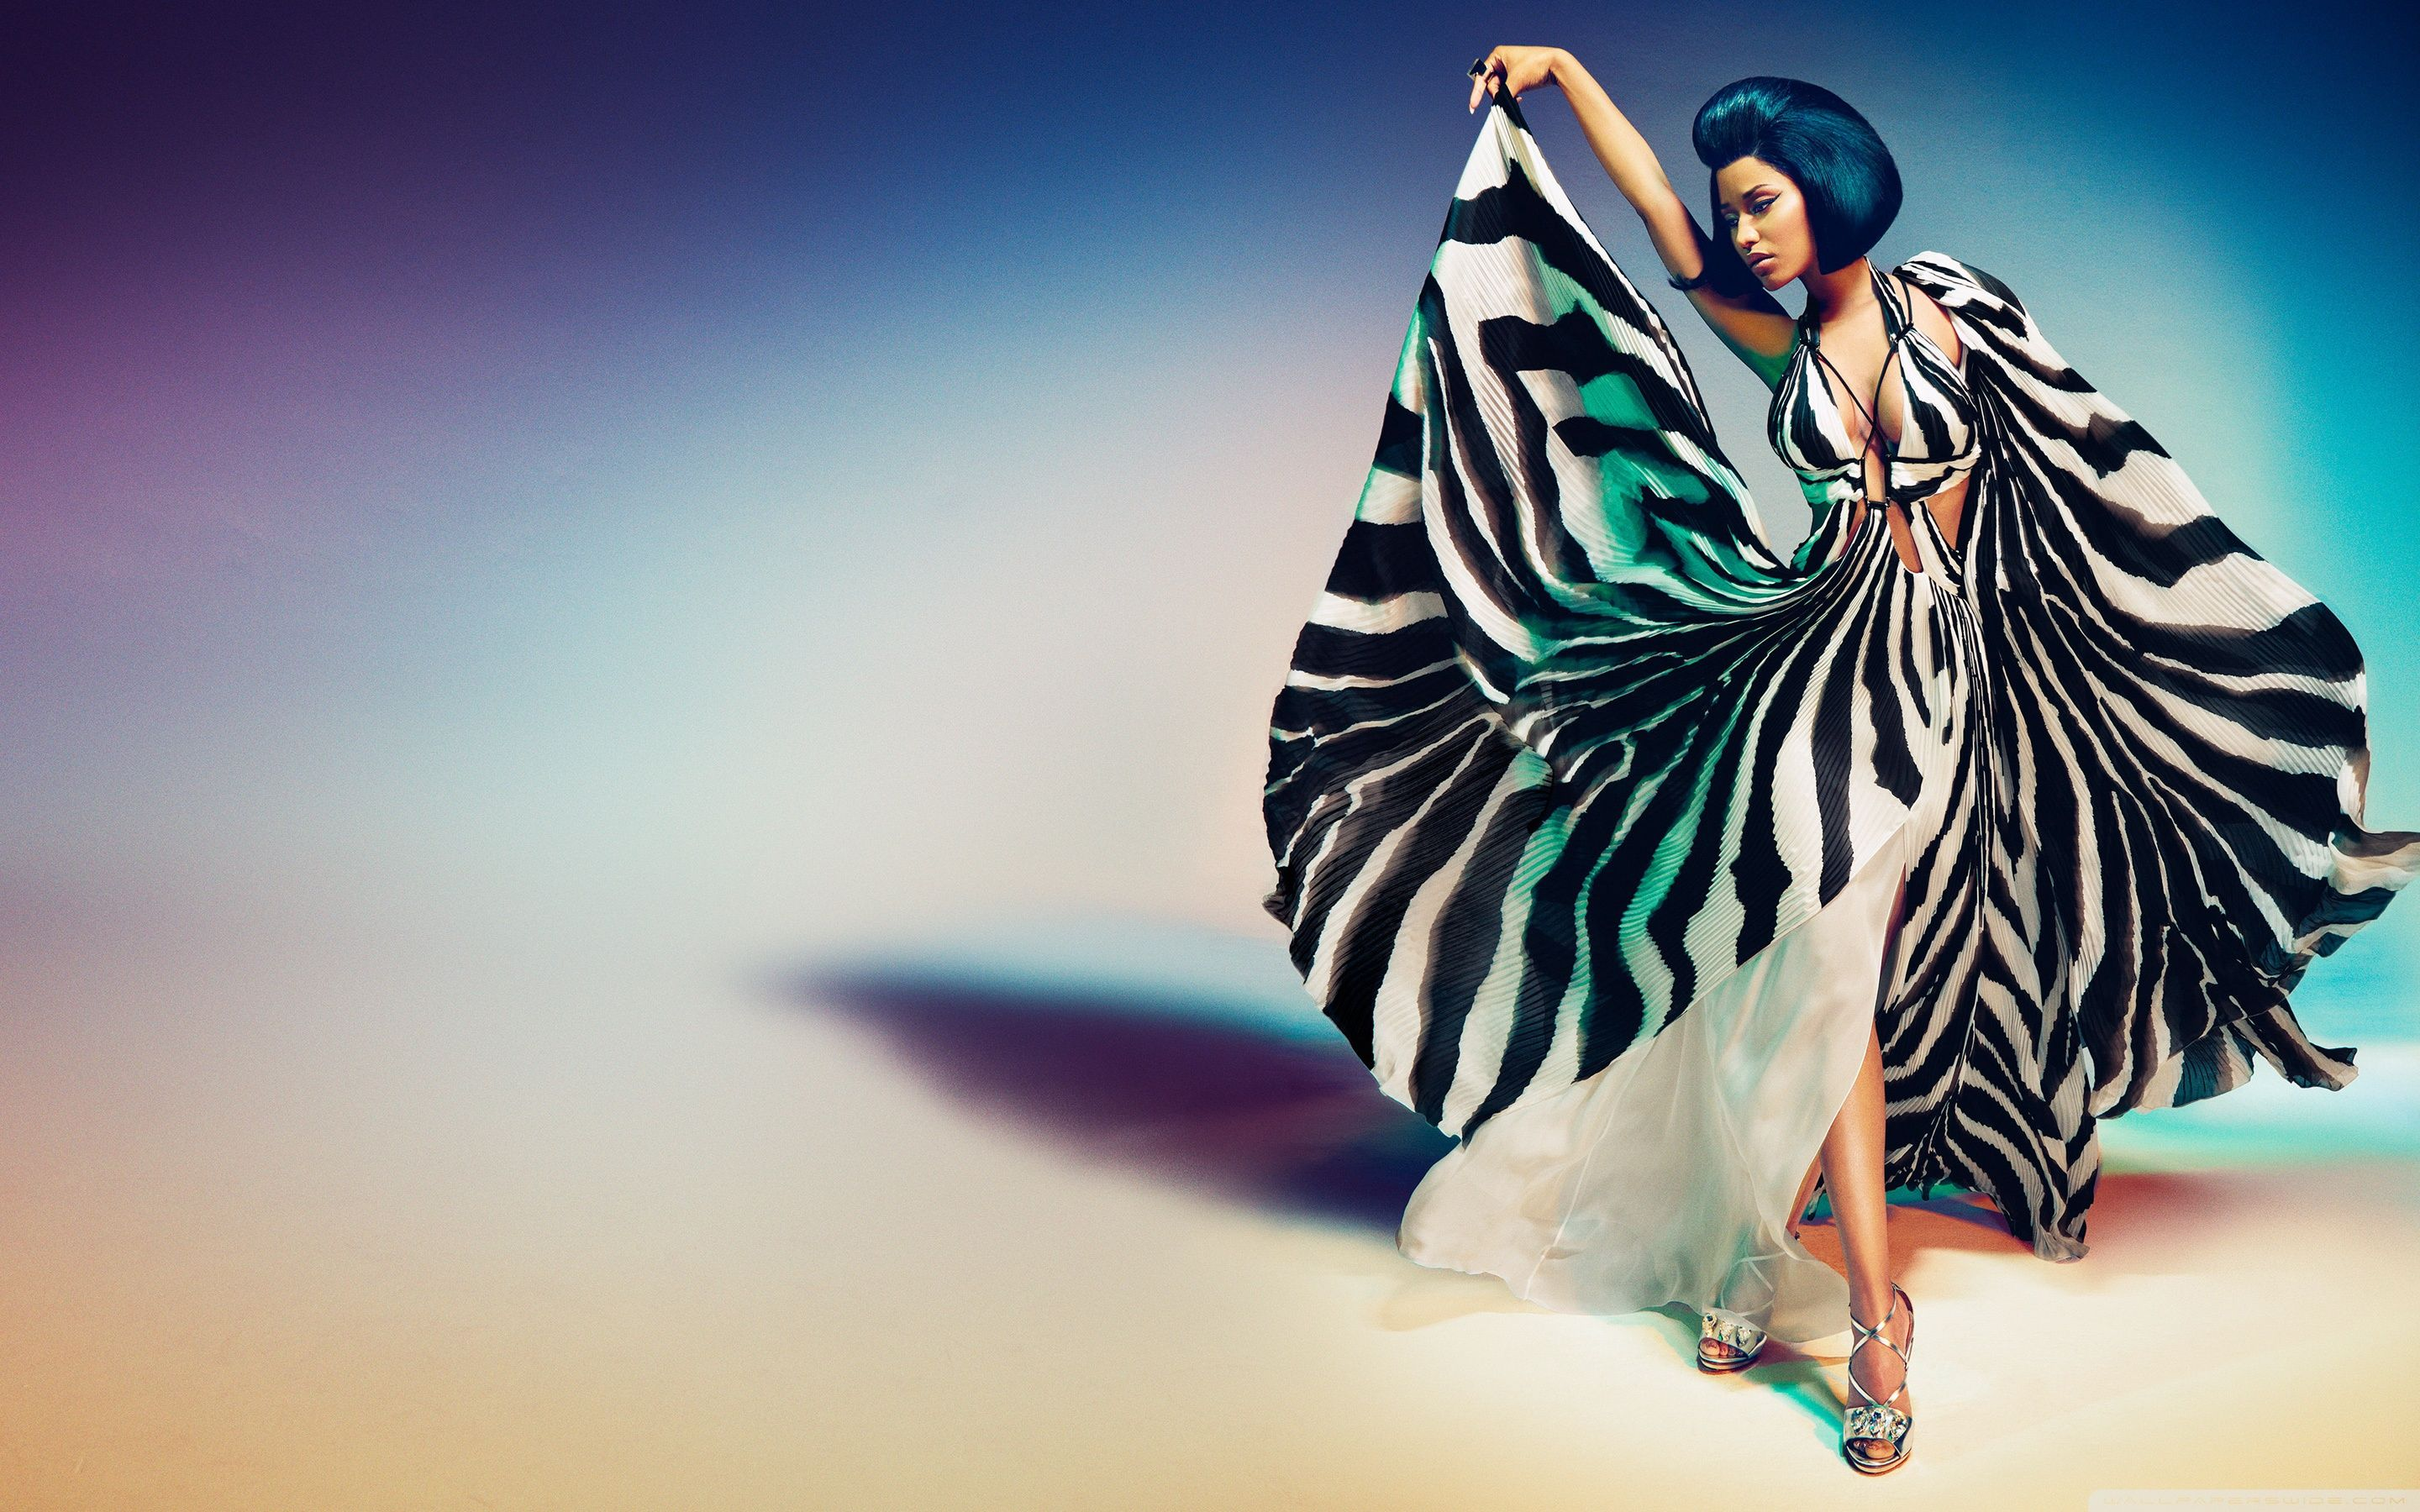 Fashion Design Wallpapers Posted By John Johnson